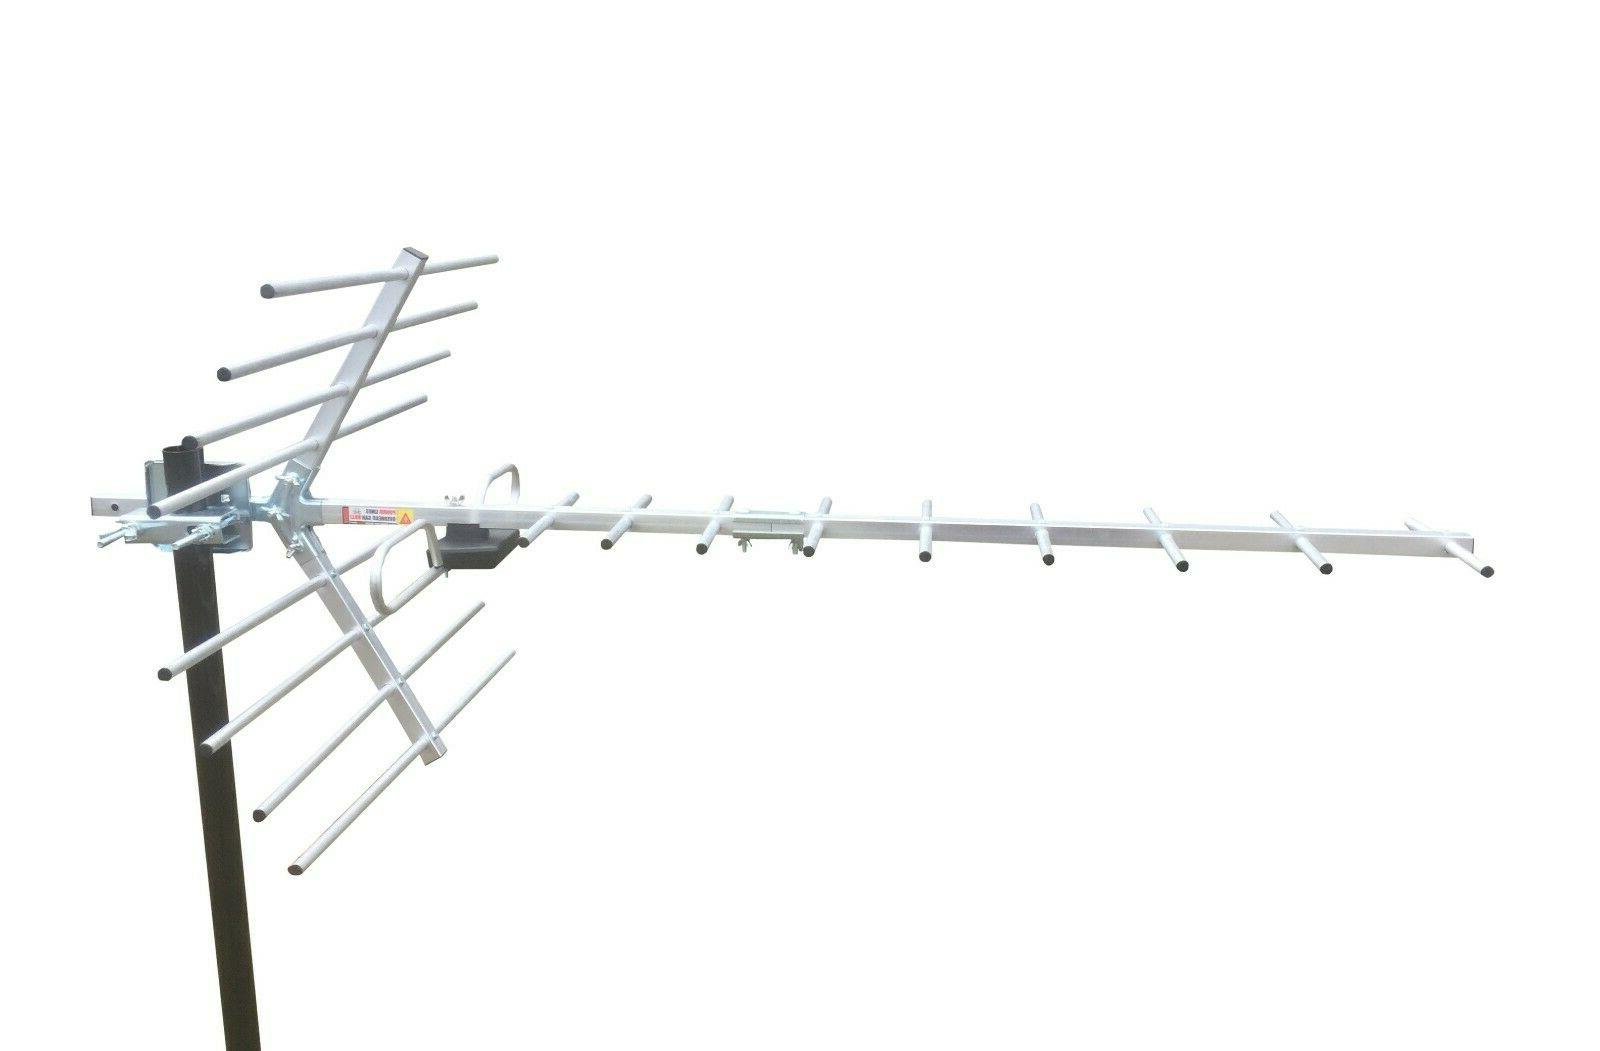 250 Indoor HD TV Antenna - DEEP FRINGE